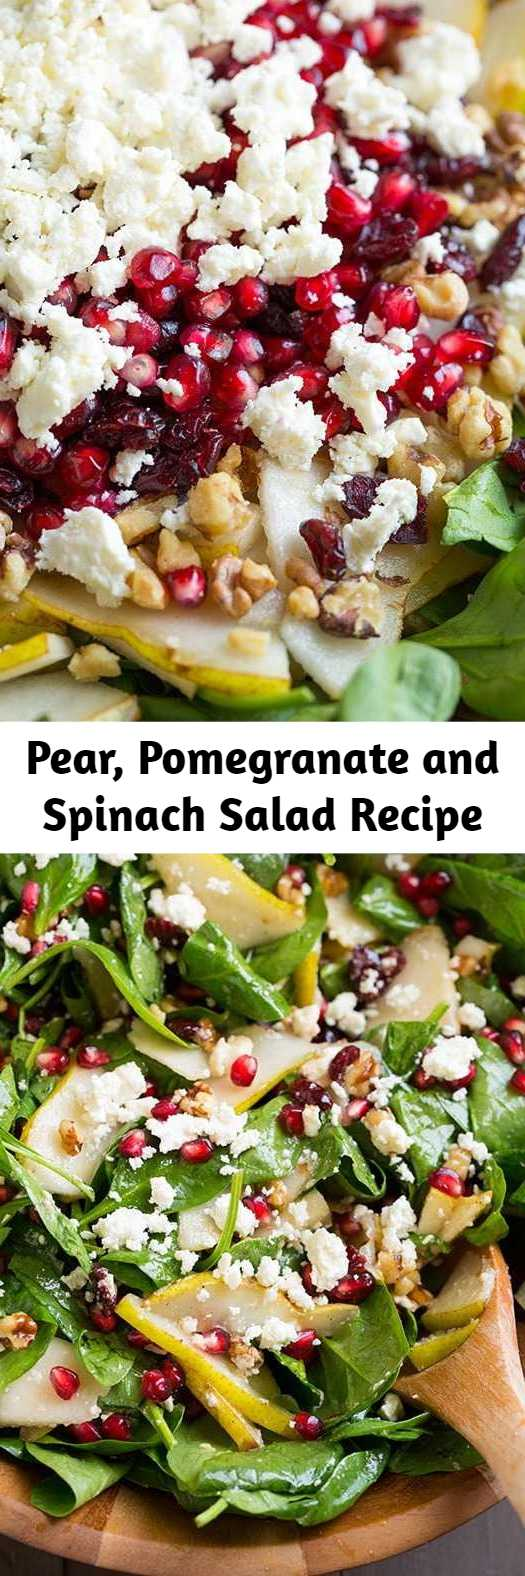 Pear, Pomegranate and Spinach Salad Recipe - This colorful salad is brimming with fresh flavor it's it's perfect for the holidays. I love how festive the arils look in this salad when paired with the greens, and of course I'm in love with the entire flavor combination of this salad!